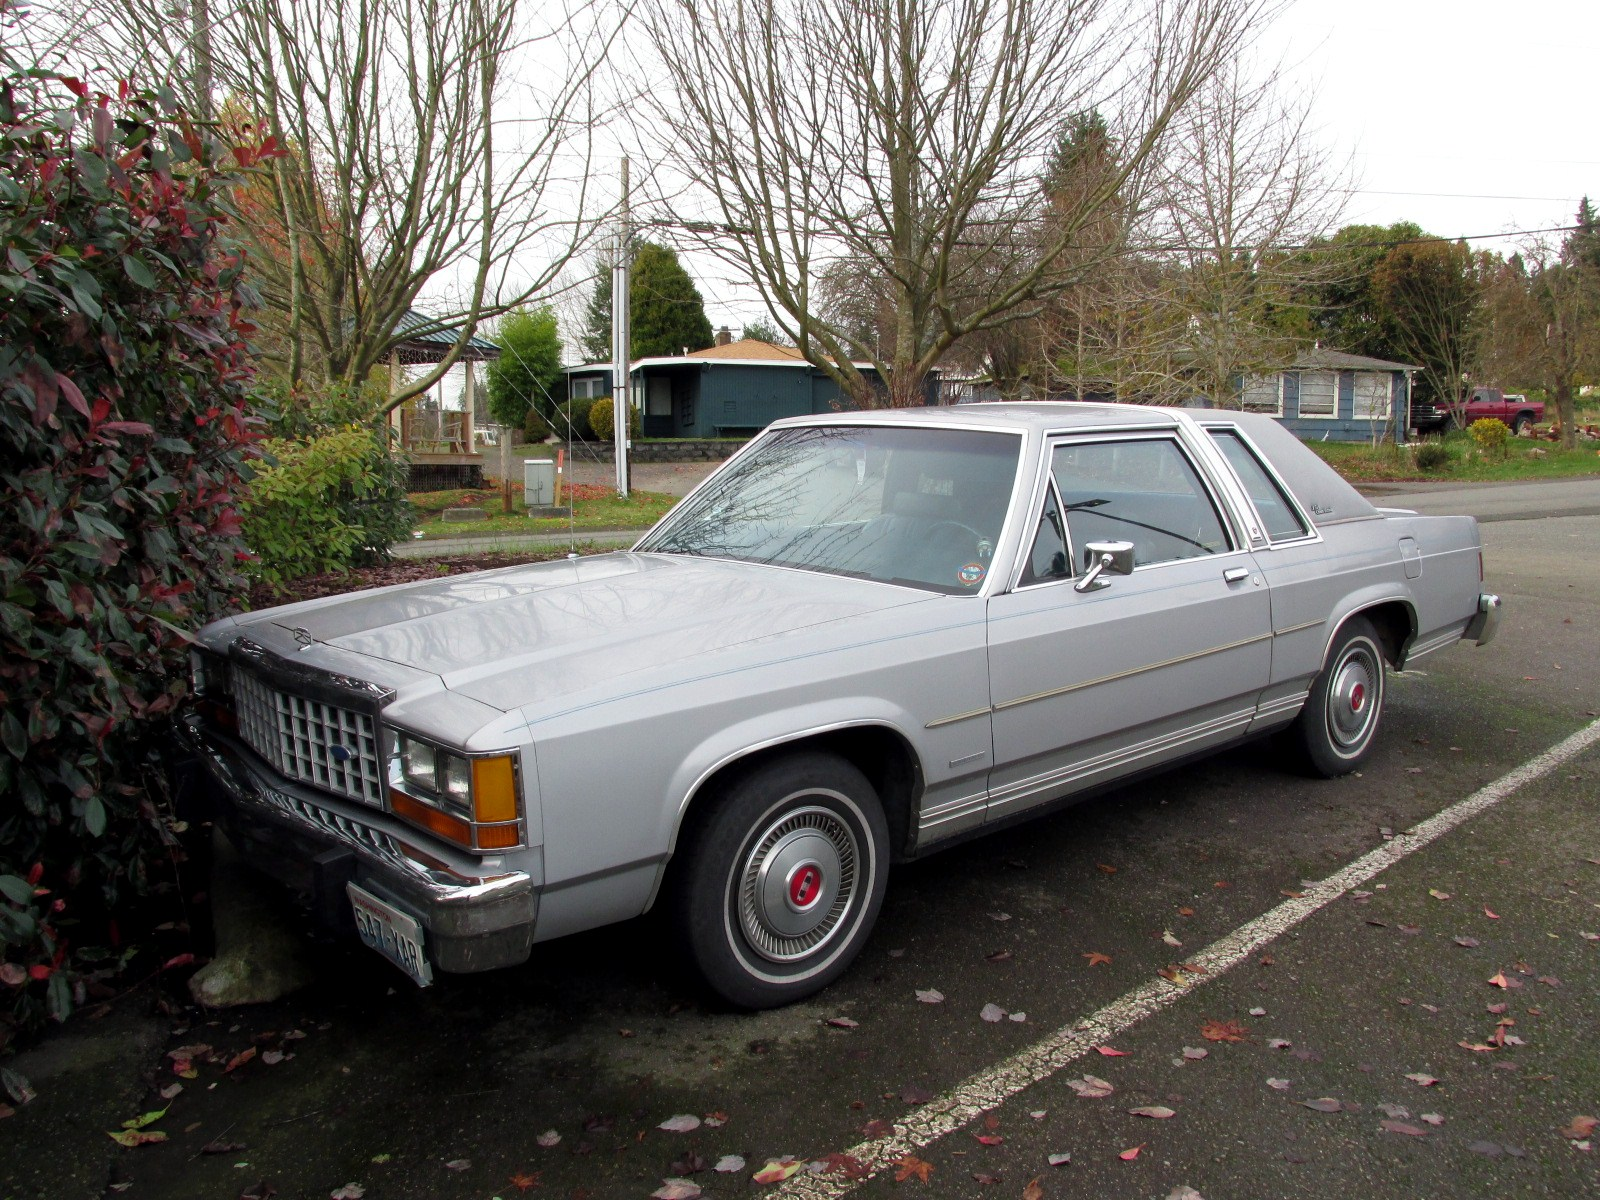 The Street Peep Malaise Y Monday 1981 Ford Granada 1984 Ltd 1970 Crown Victoria